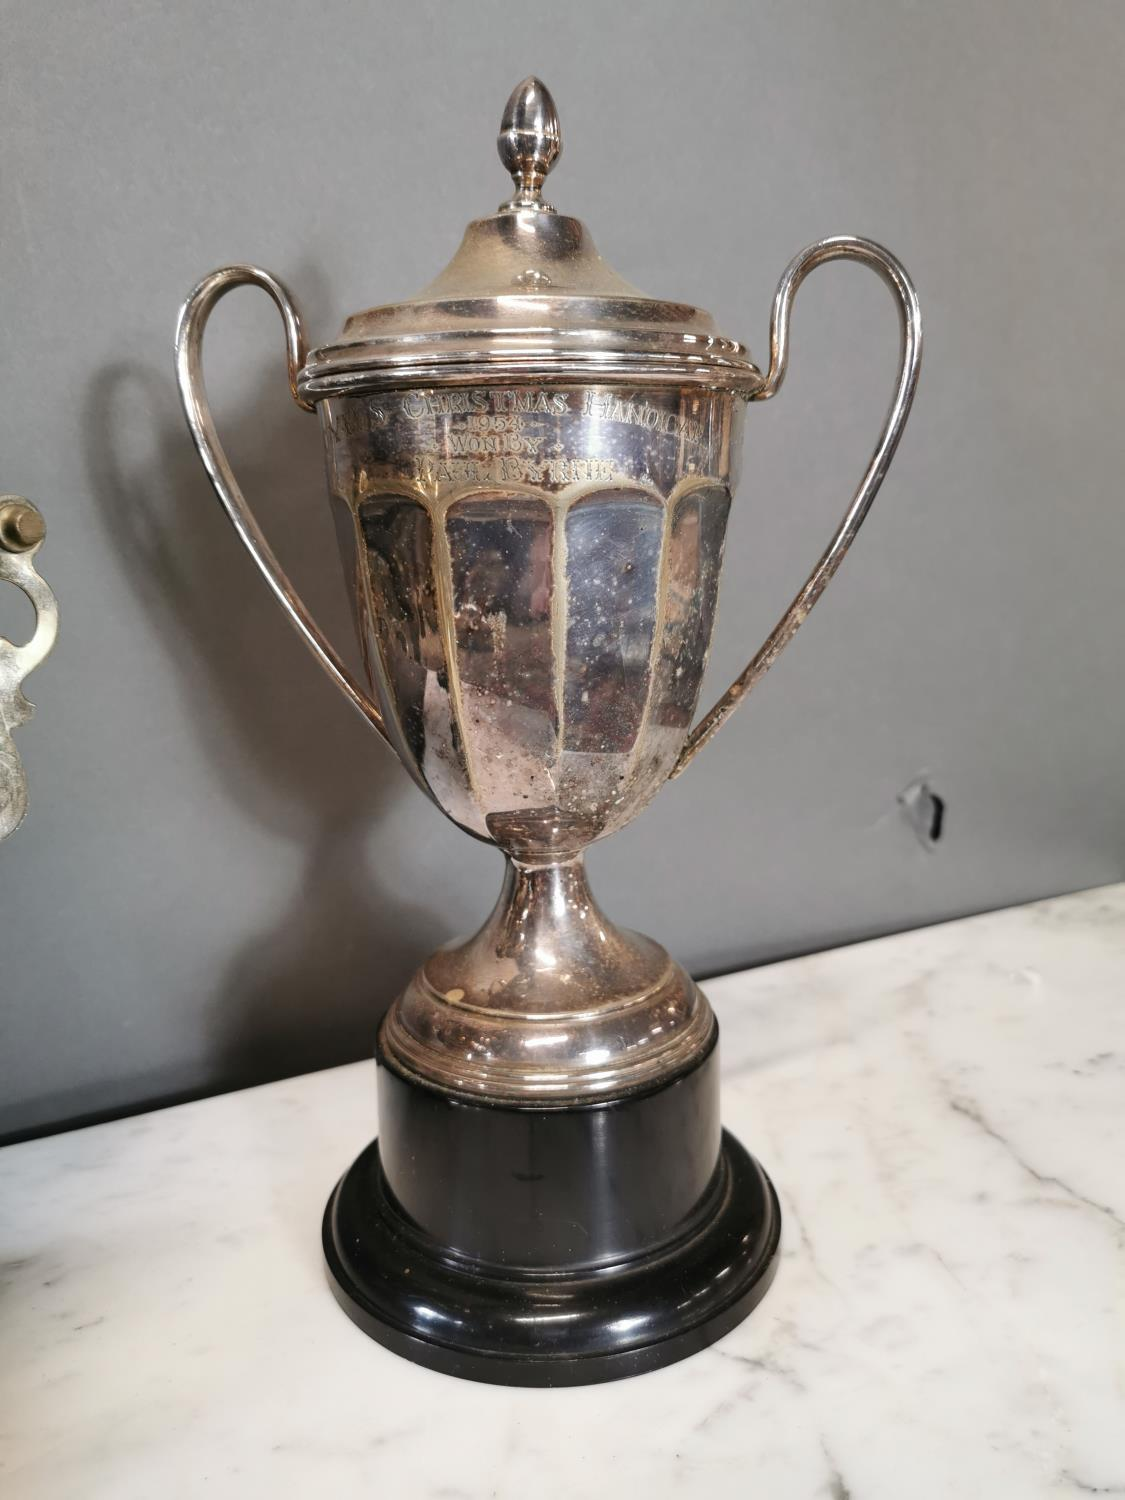 Early 20th. C. silverplated samovar - Image 3 of 3